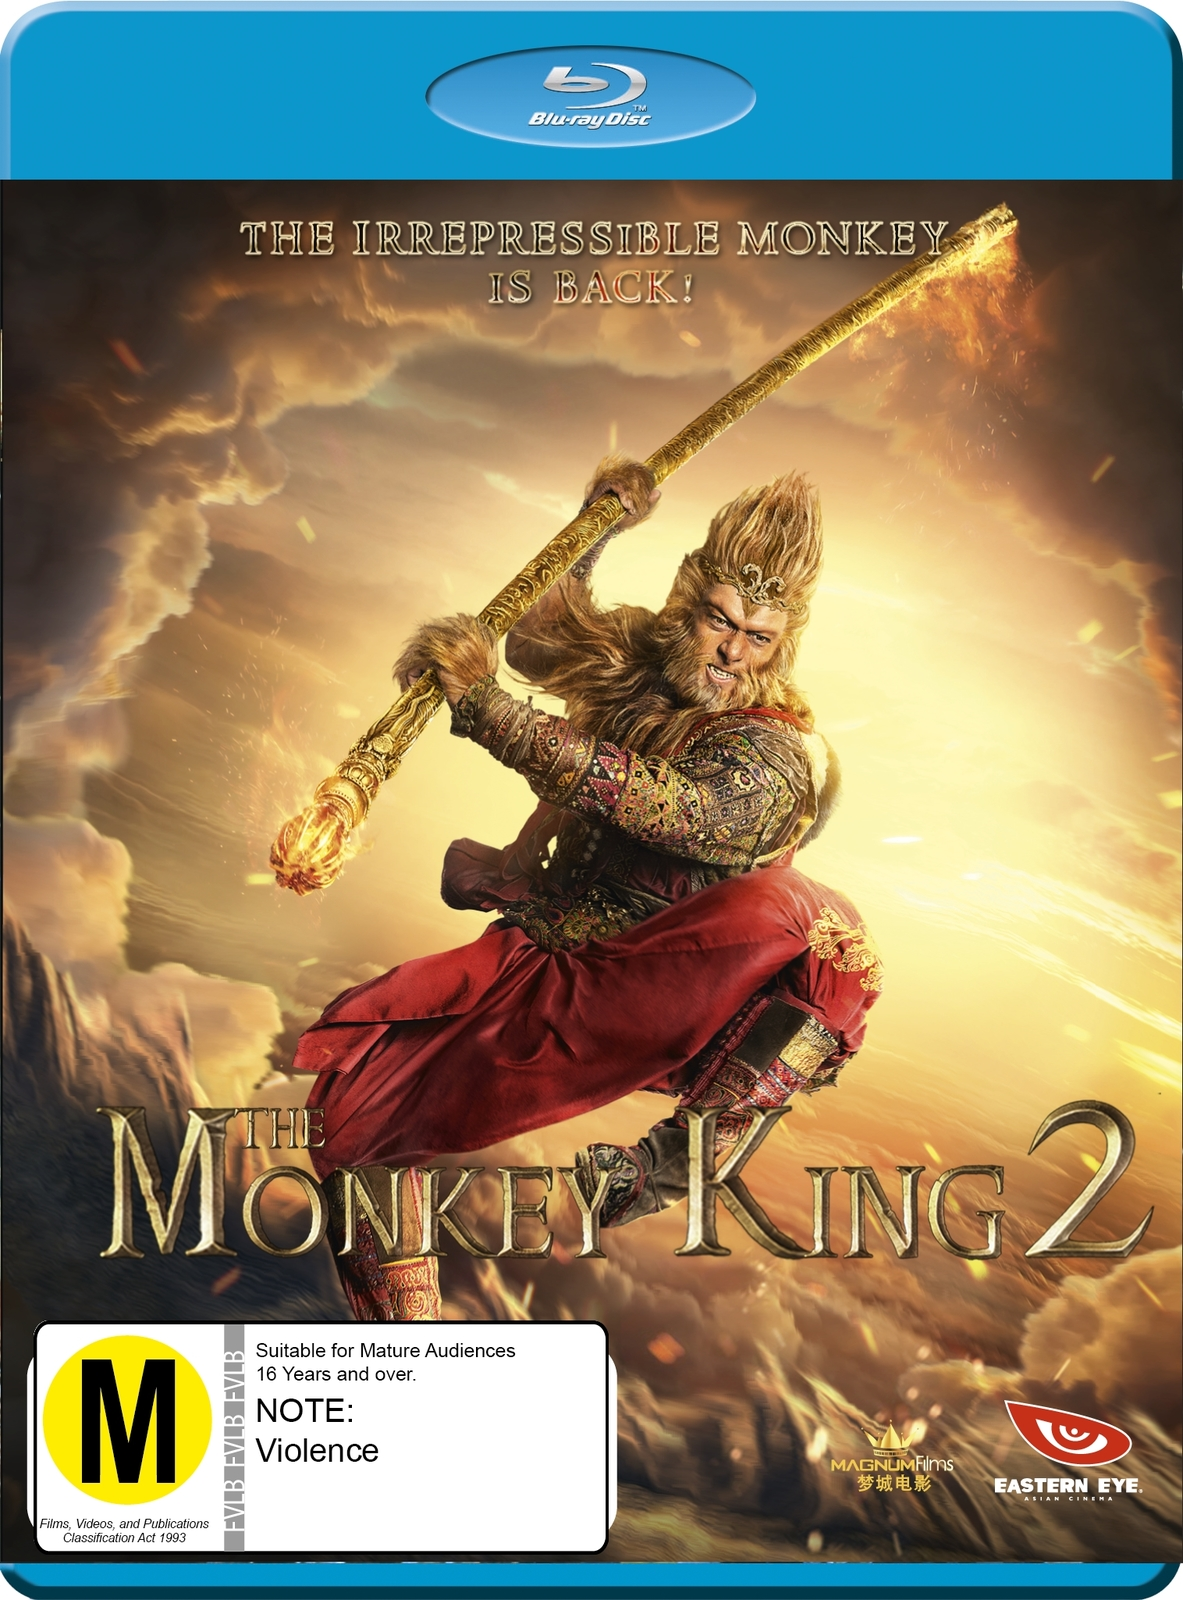 The Monkey King 2 on Blu-ray image